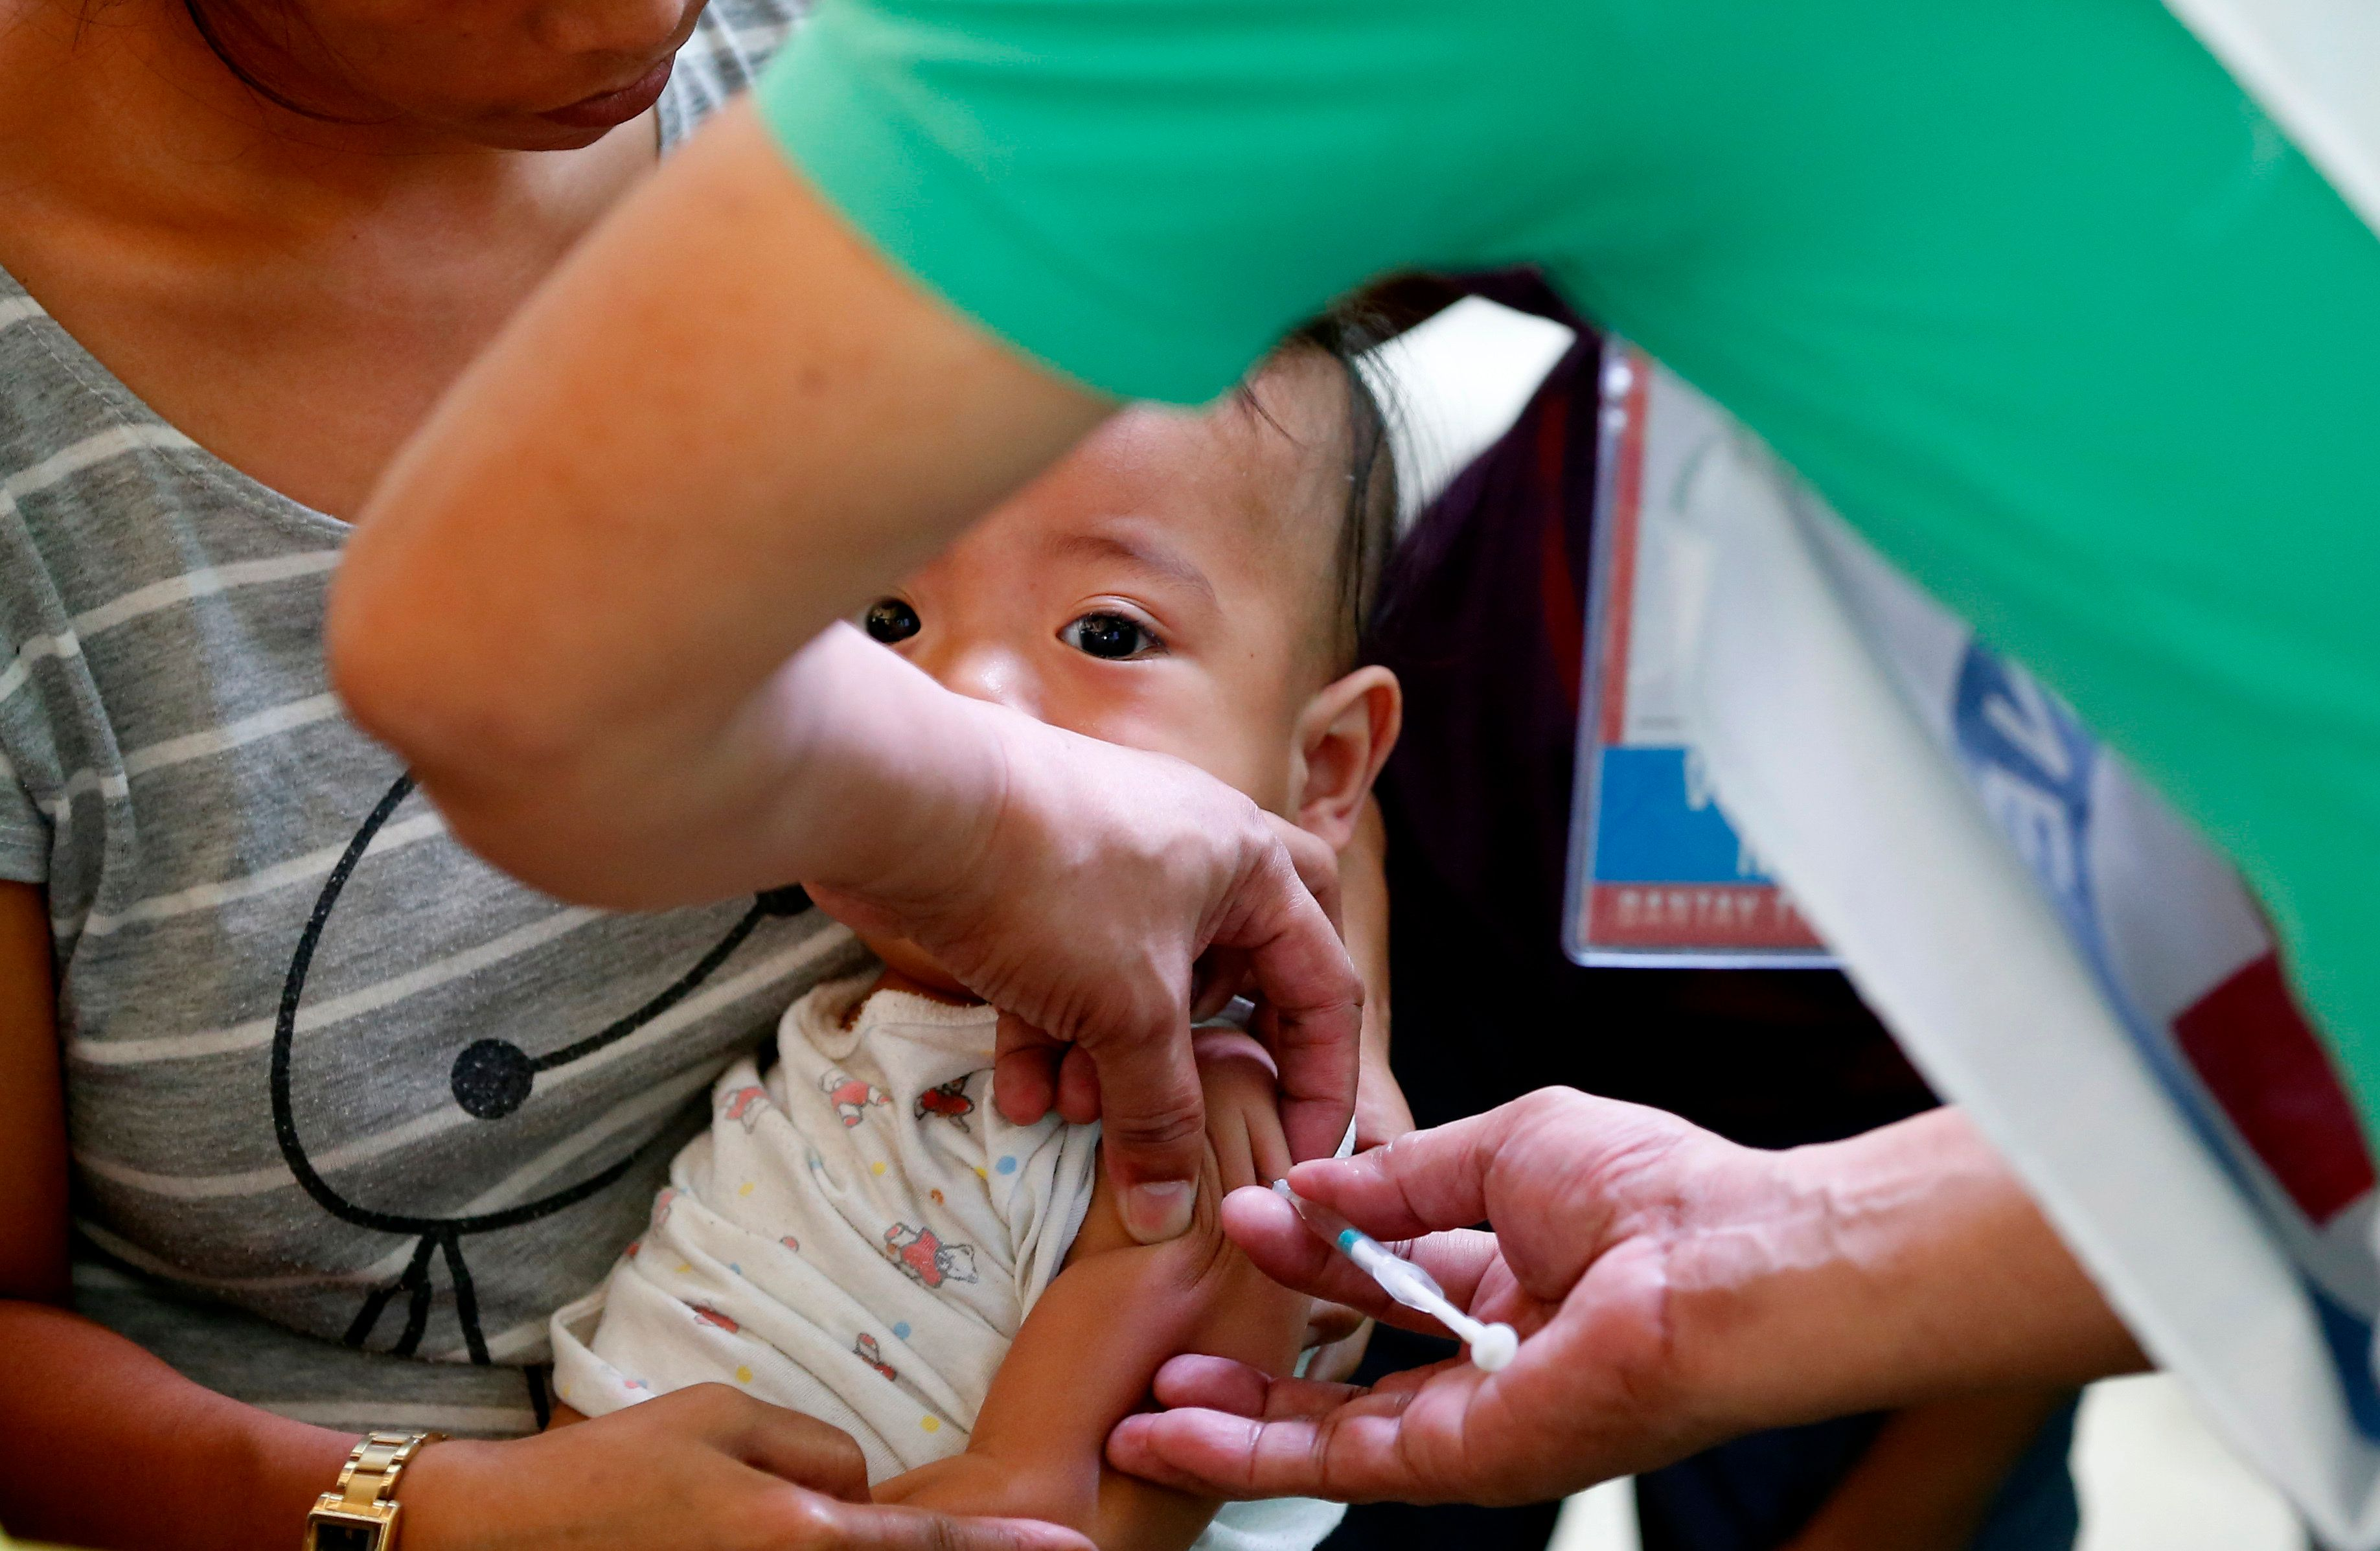 Philippine National Red Cross and Health Department volunteers conduct house-to-house measles vaccination to children at an informal settlers community in Manila, Philippines following an outbreak of measles that already spread to four regions in the country and has claimed the lives of more than five dozen victims Saturday, Feb. 16, 2019. The house-to-house vaccination was prompted by the reluctance of parents to have their children vaccinated due to the controversy involving an anti-Dengue vaccine known as Dengvaxia. In an effort to convince the parents, the Department of Health has tapped the services of President Rodrigo Duterte and Filipino boxing champion and now Senator Manny Pacquiao to allay fearful parents. (AP Photo/Bullit Marquez)